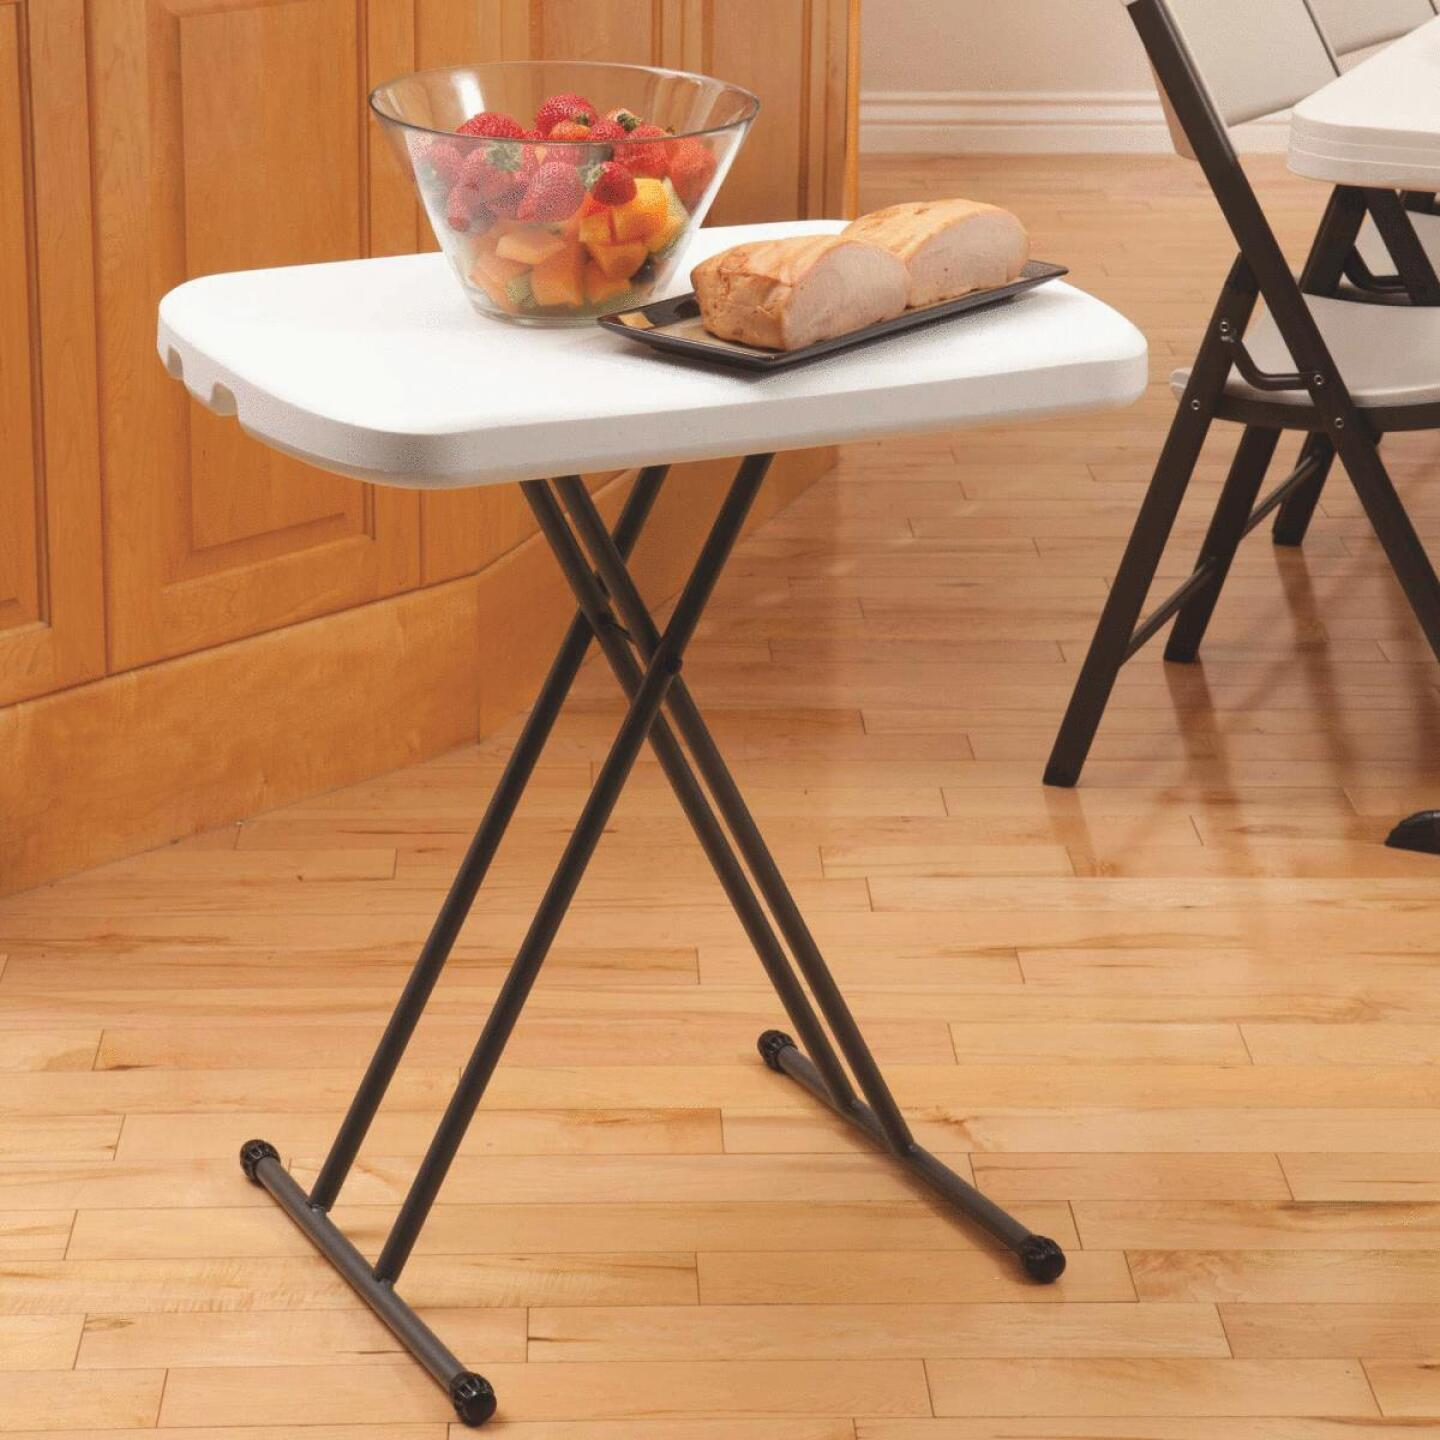 Lifetime 26 In. x 18 In. Personal Folding Table, White Granite Image 4